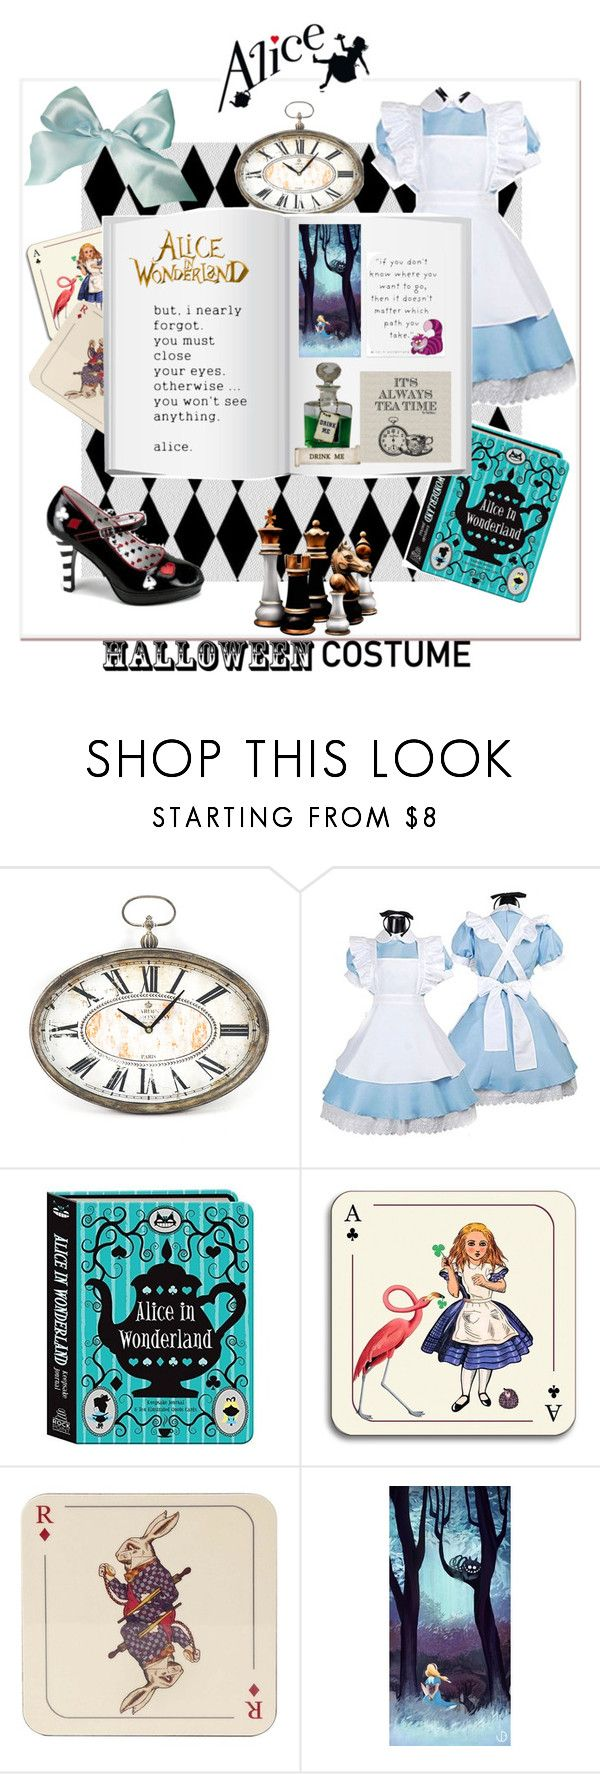 """""""Just Alice 🎩🐇"""" by thefakecake ❤ liked on Polyvore featuring Zentique, Avenida Home, Disney, fun, Alice, favoritestory and Hallowee"""